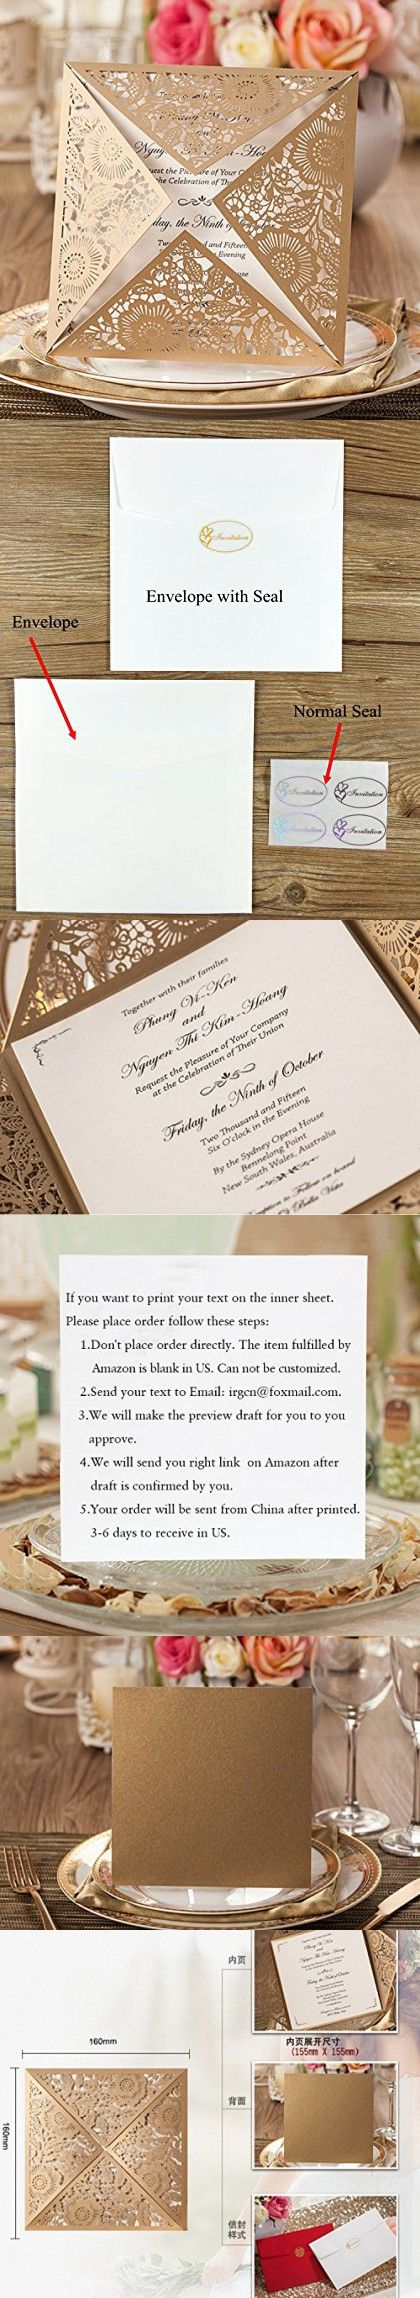 424 best Wedding Invitations images on Pinterest